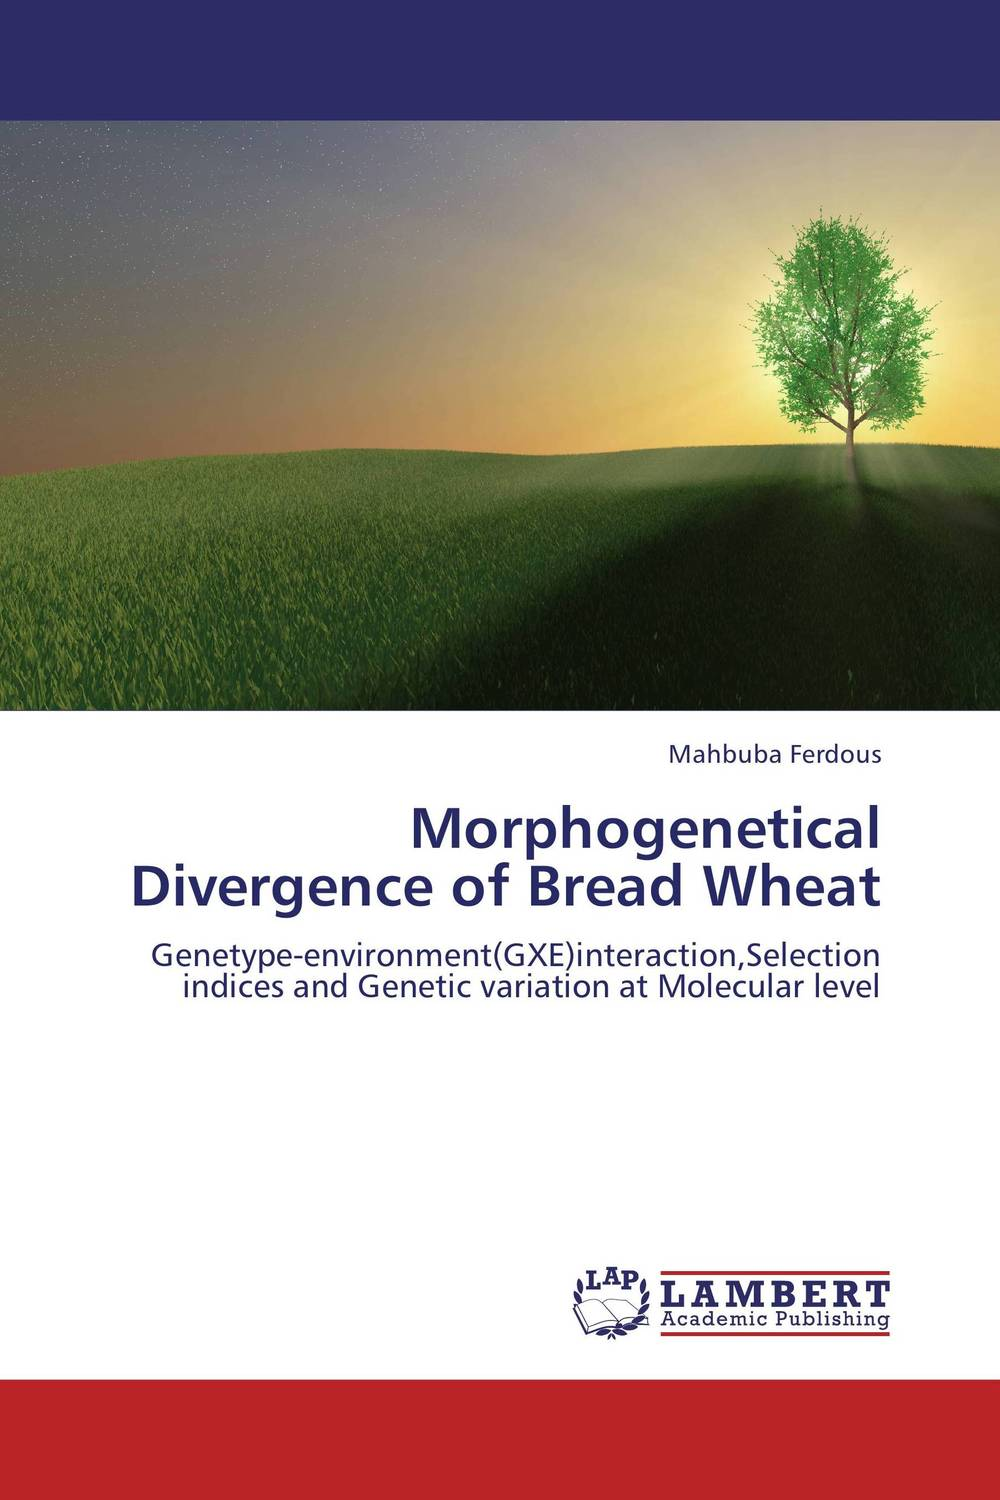 Morphogenetical Divergence of Bread Wheat mukund shiragur d p kumar and venkat rao chrysanthemum genetic divergence